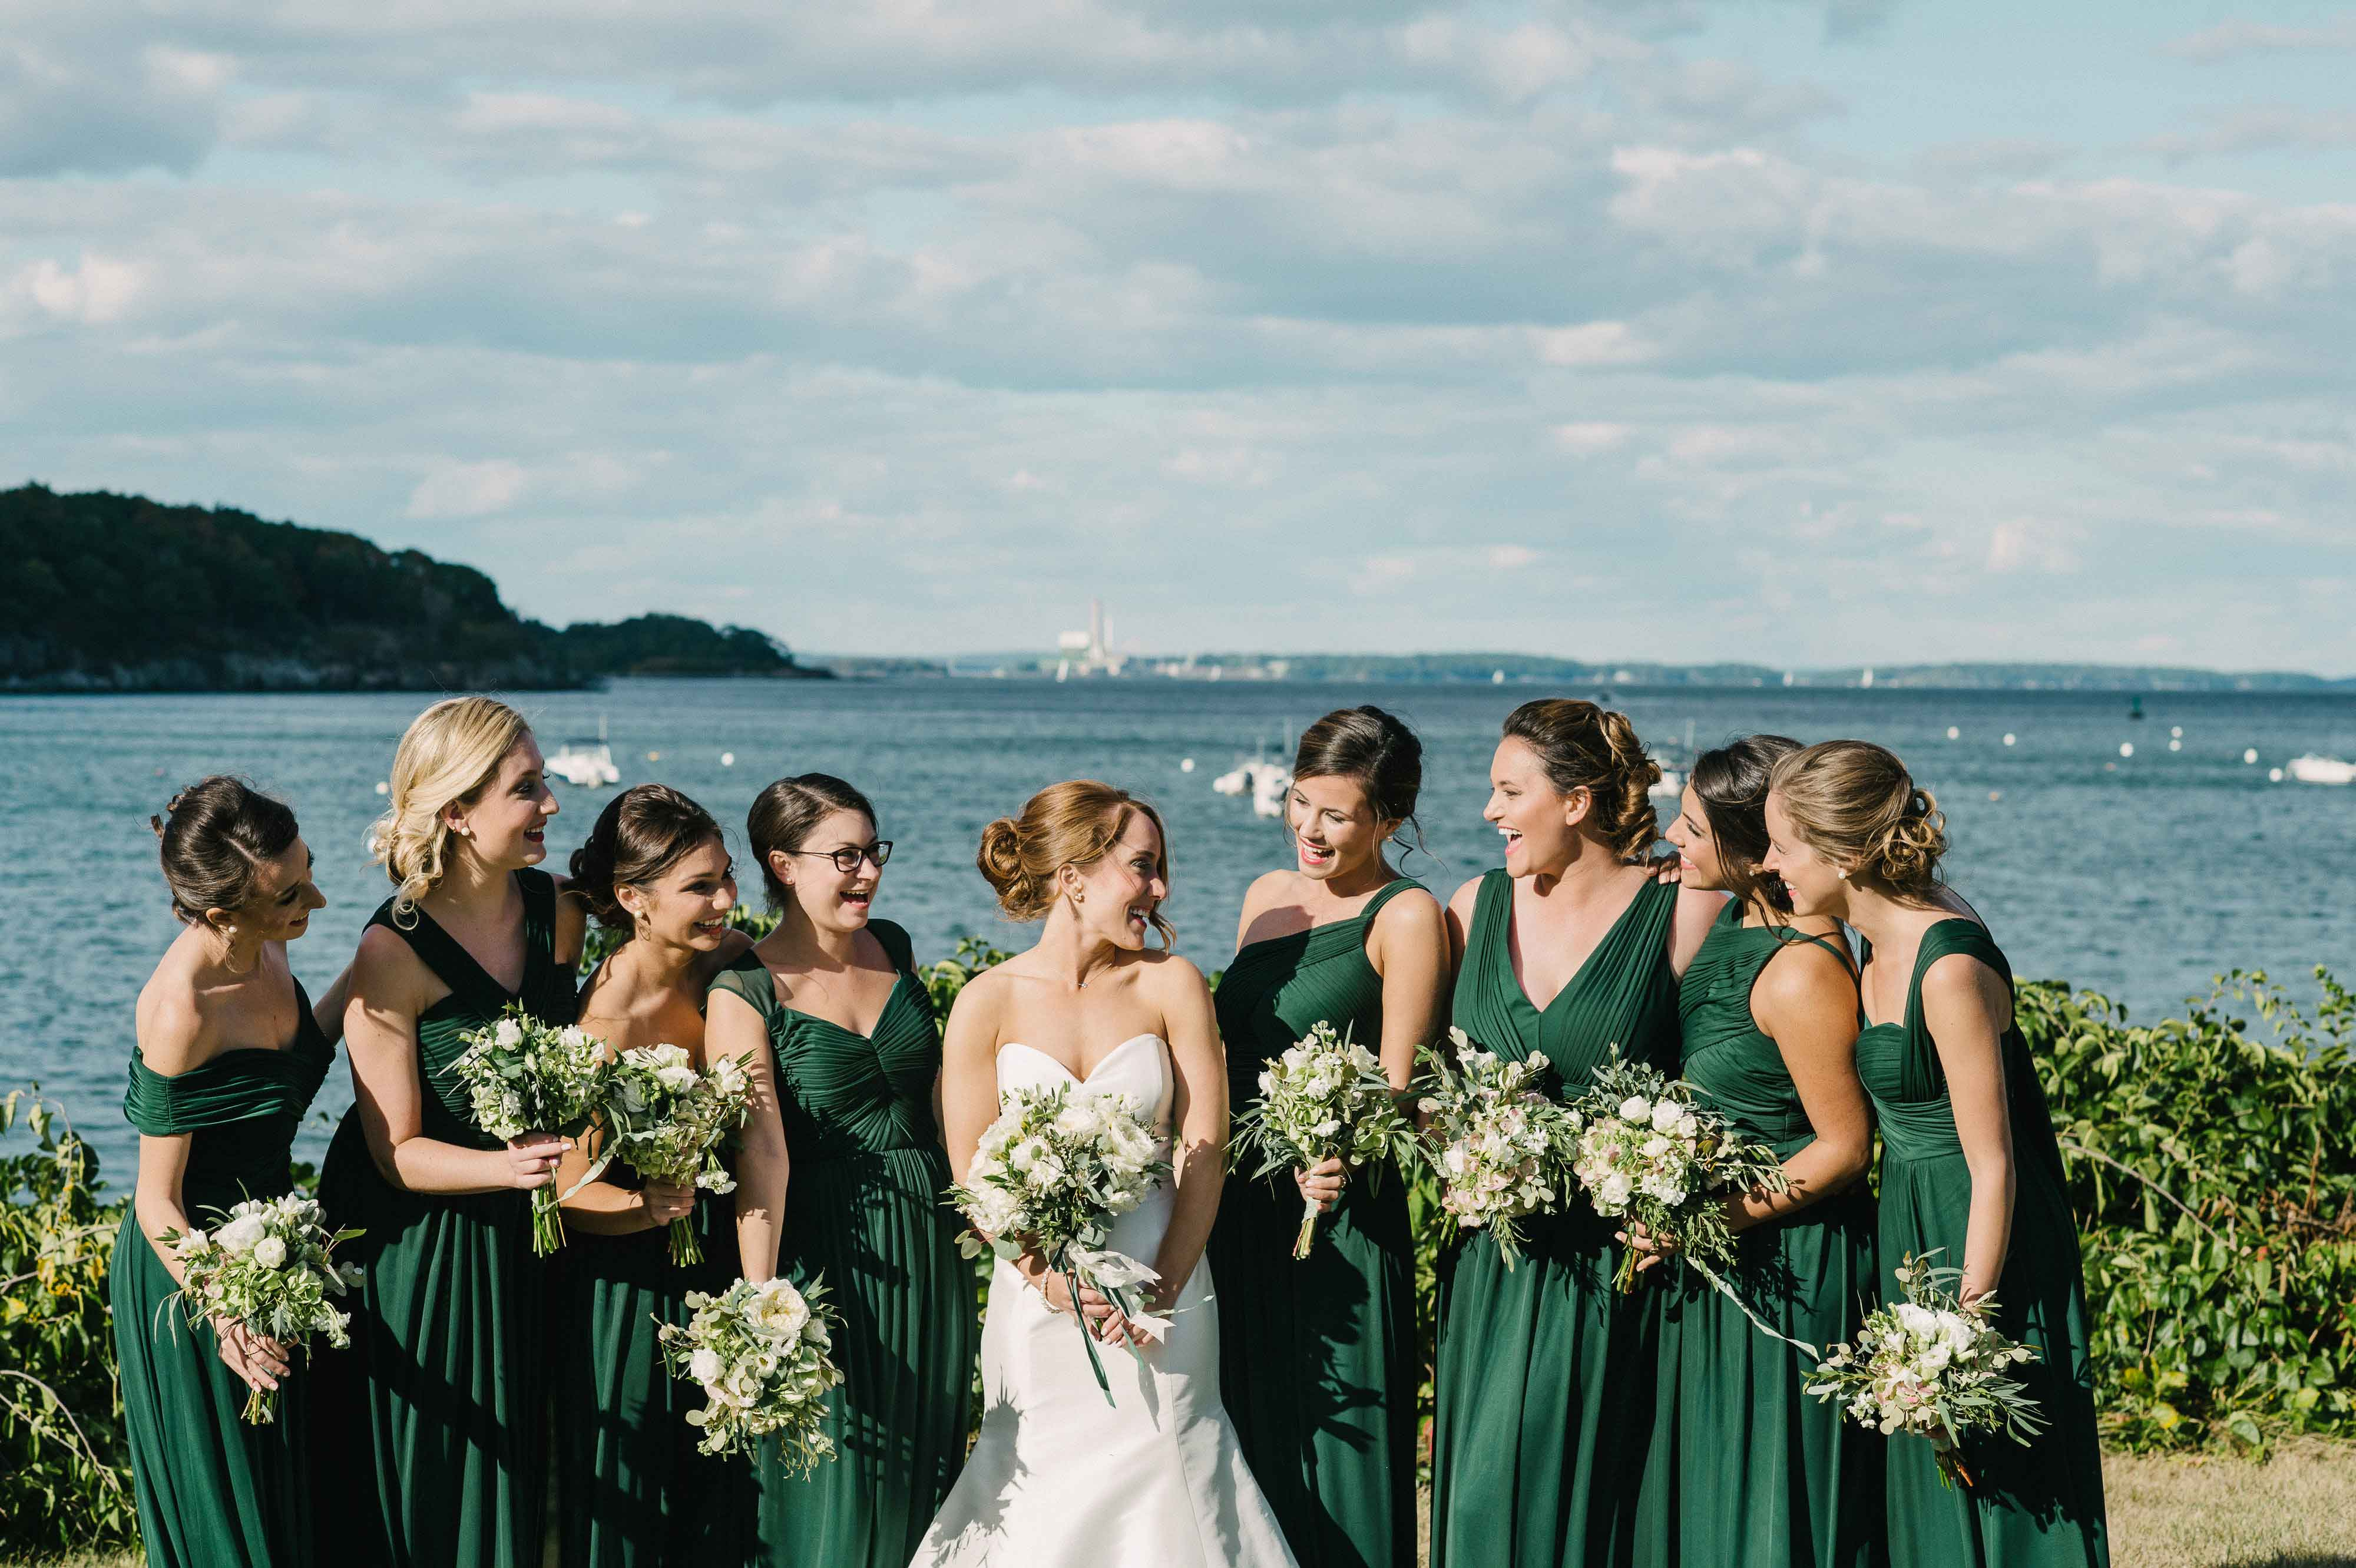 Green Wedding Details & Décor Ideas - Inside Weddings